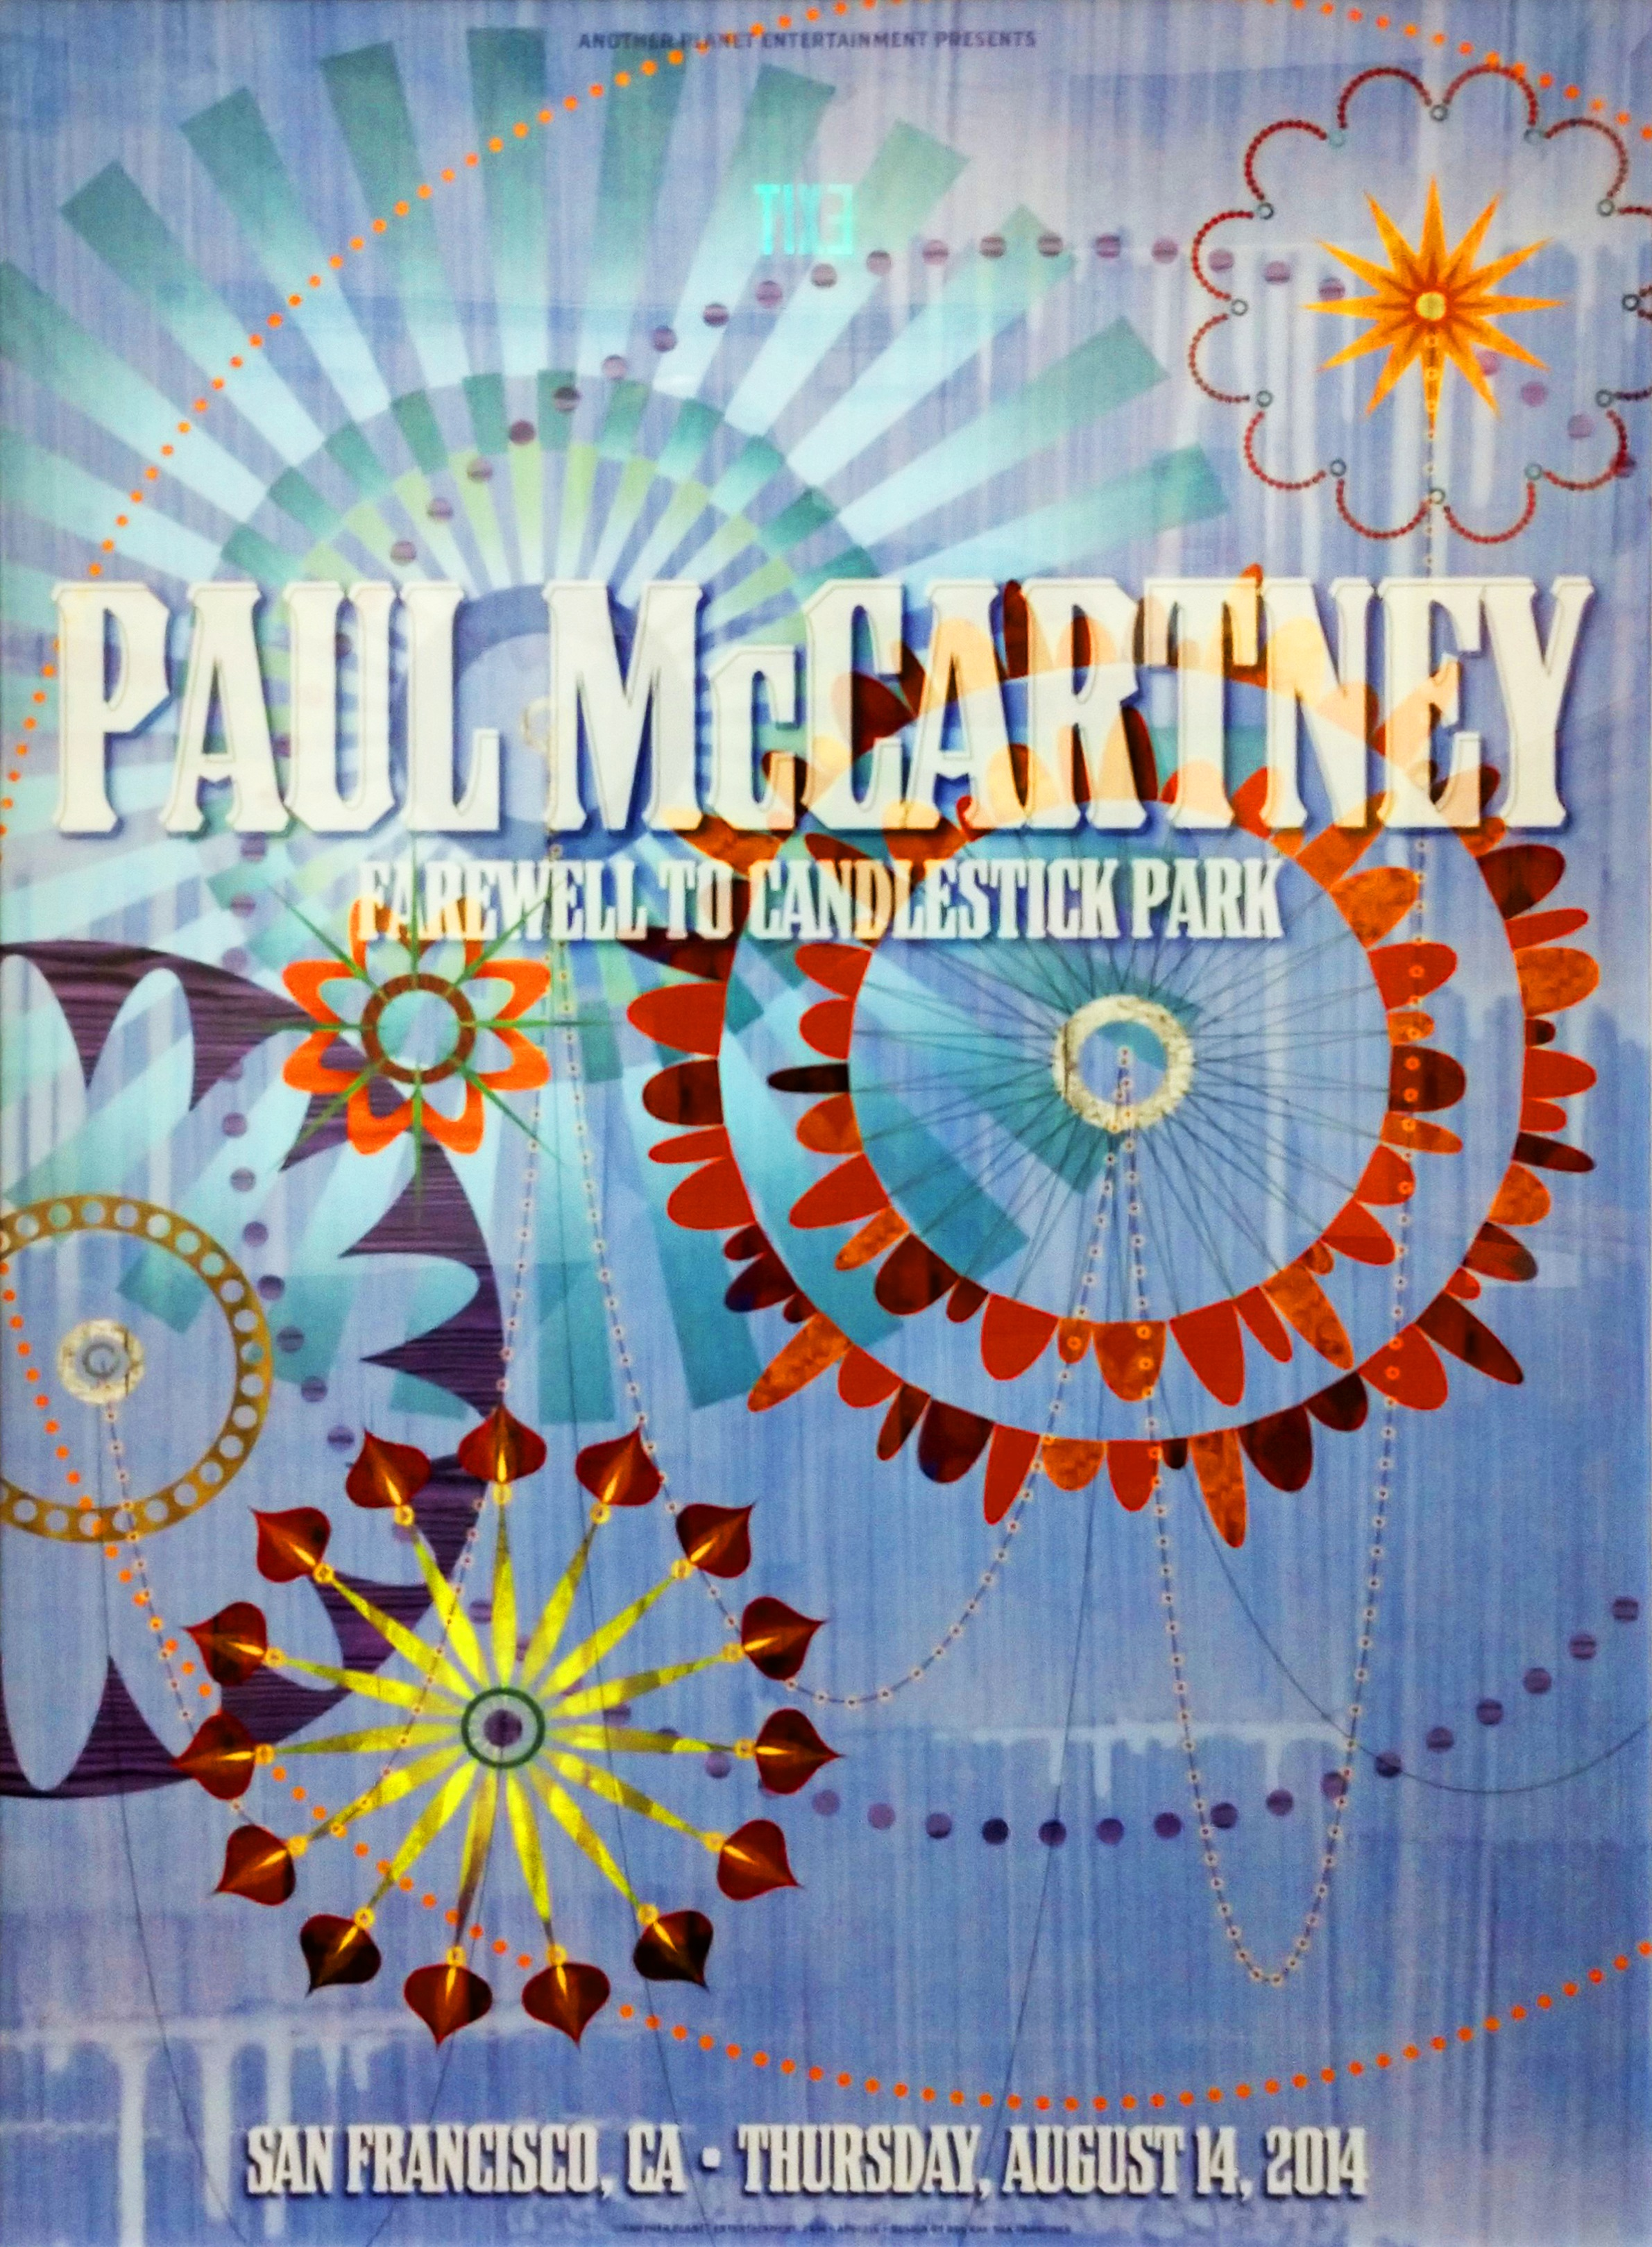 Poster for a Paul McCartney concert (2014), Rex Ray Graphic Art Collection, GLBT Historical Society, gift of the Estate of Rex Ray.